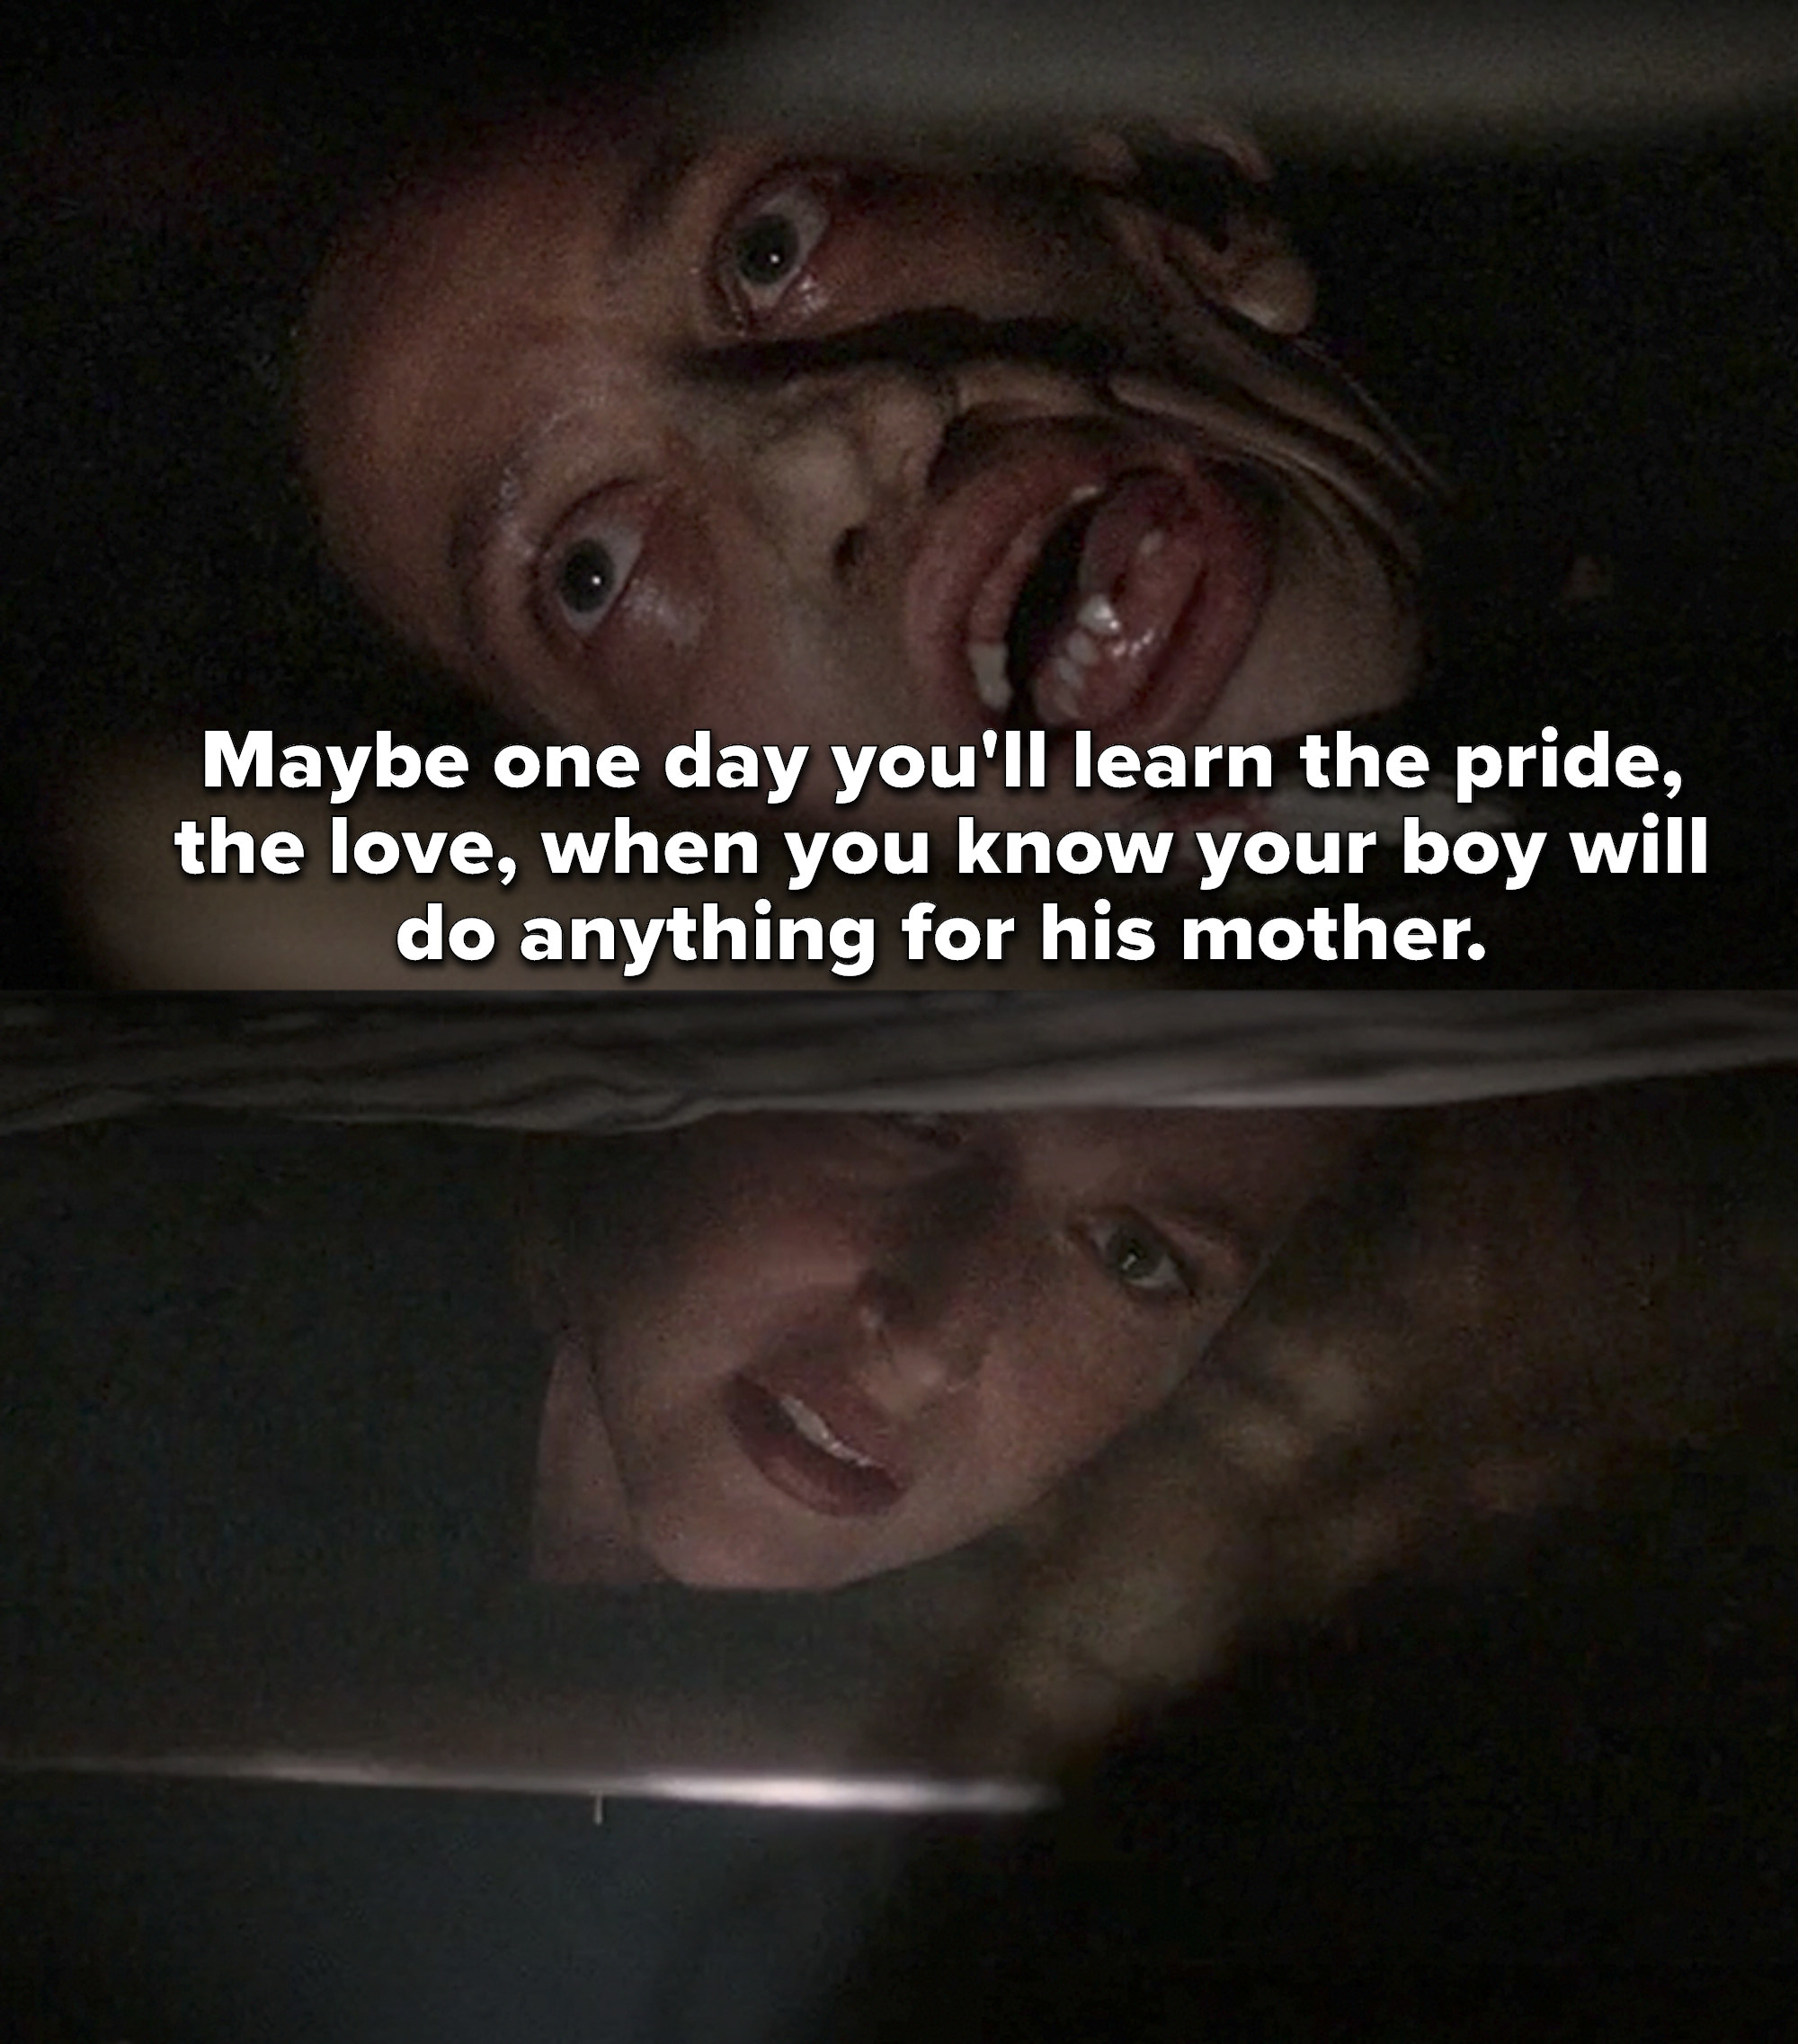 """the mother tells Scully, """"Maybe one day you'll learn the pride, the love, when you know your boy will do anything for his mother"""""""